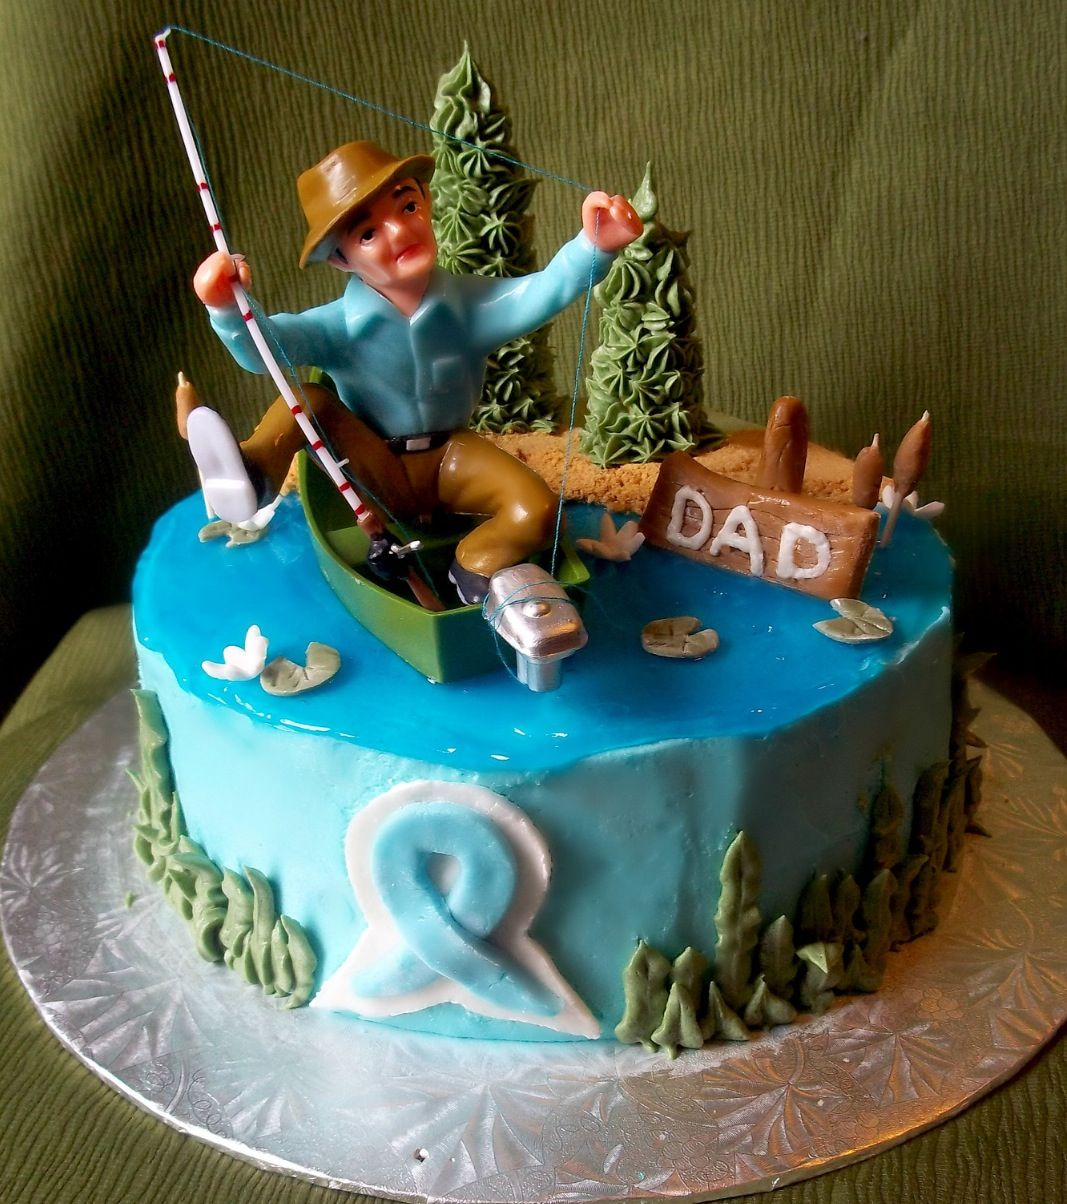 Fishing cake dads 60th birthday cake idea Dads 60th Birthday